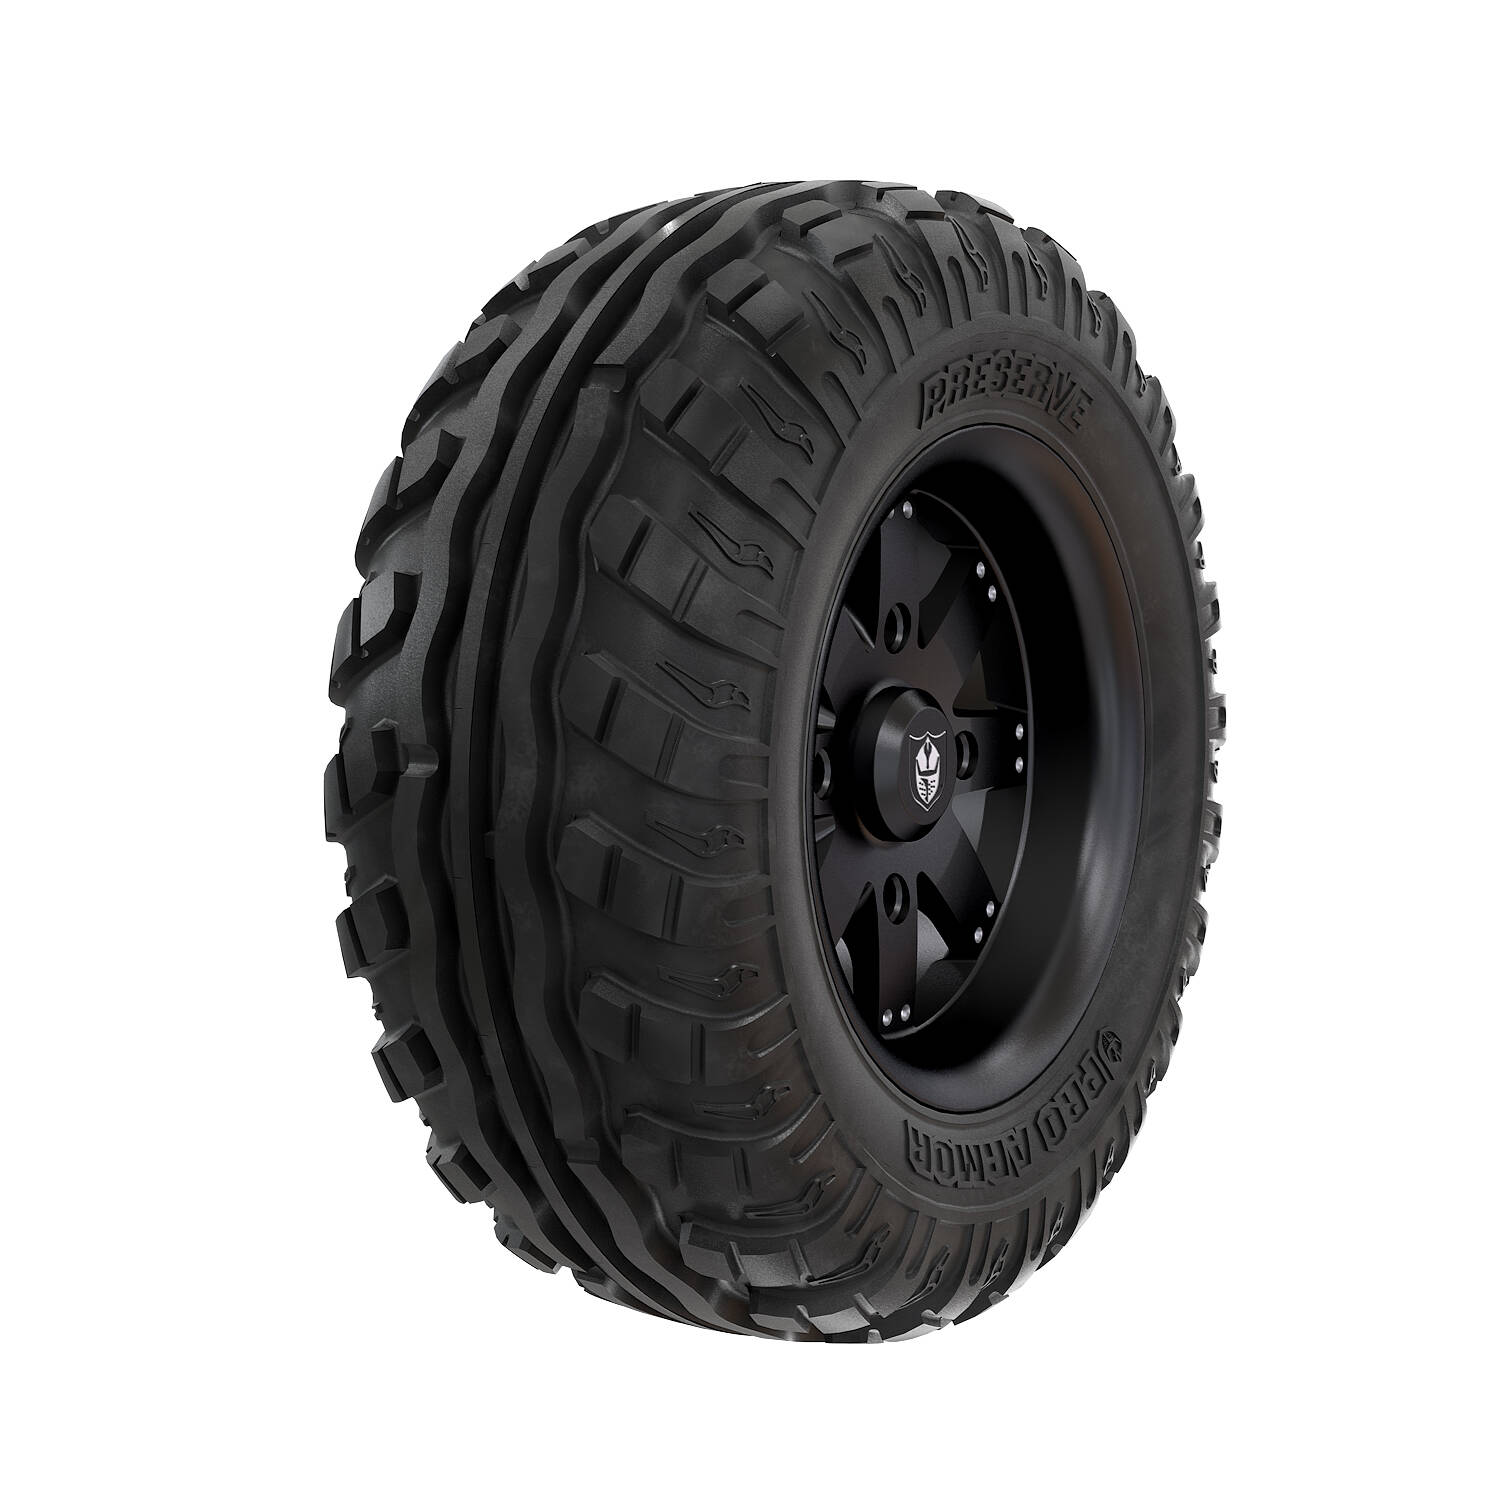 Pro Armor® Wheel & Tire Set: Amplify & Preserve™, Matte Black, 27R14